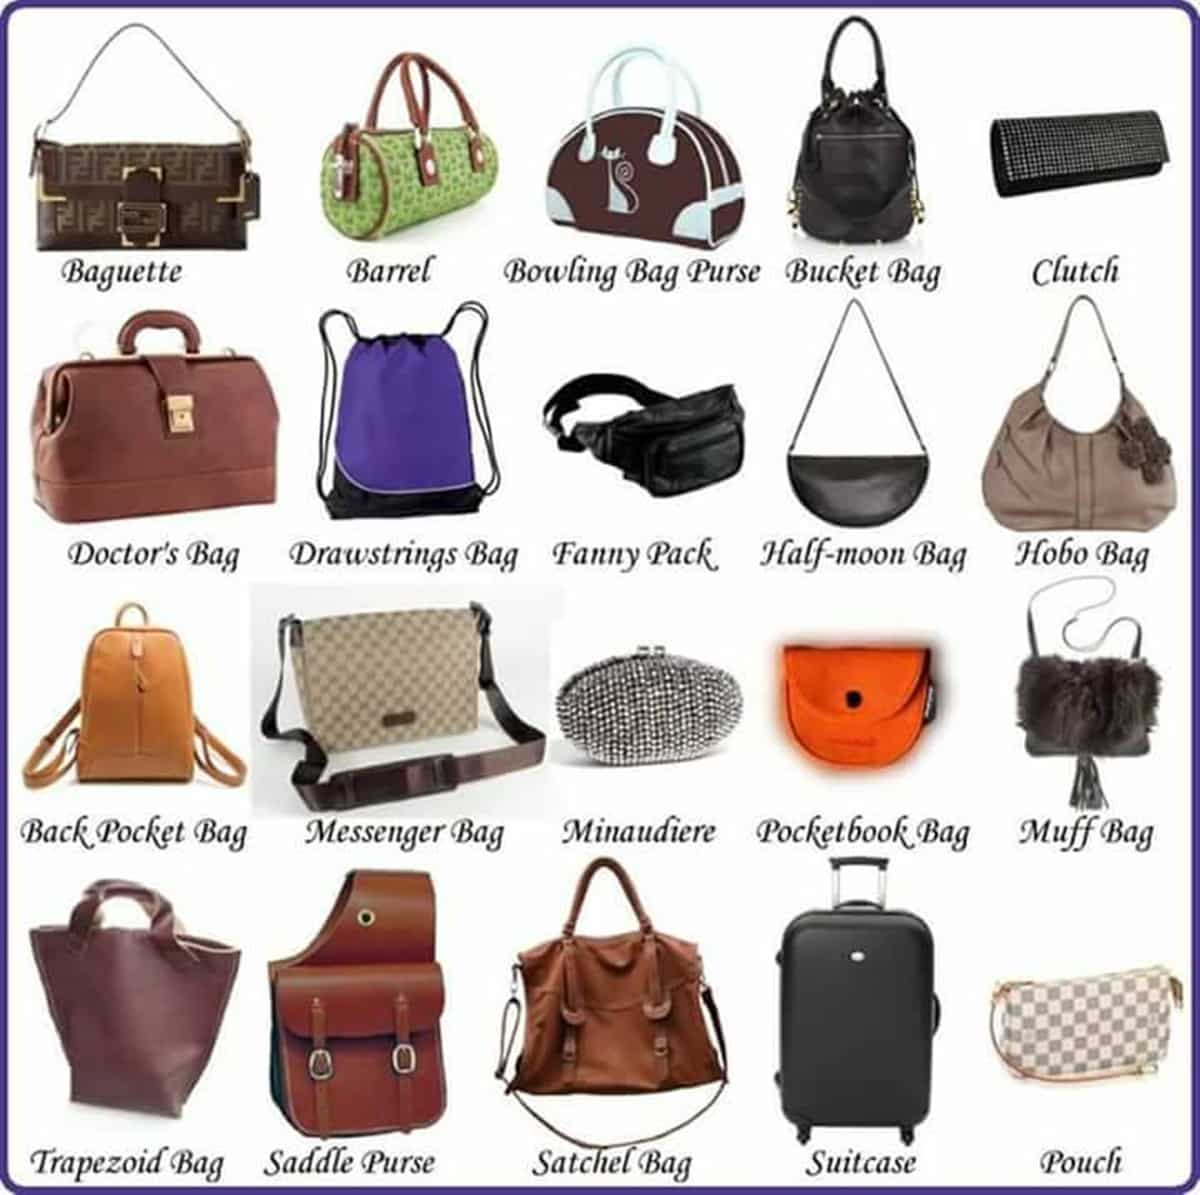 Fashion Accessories Vocabulary in English 4